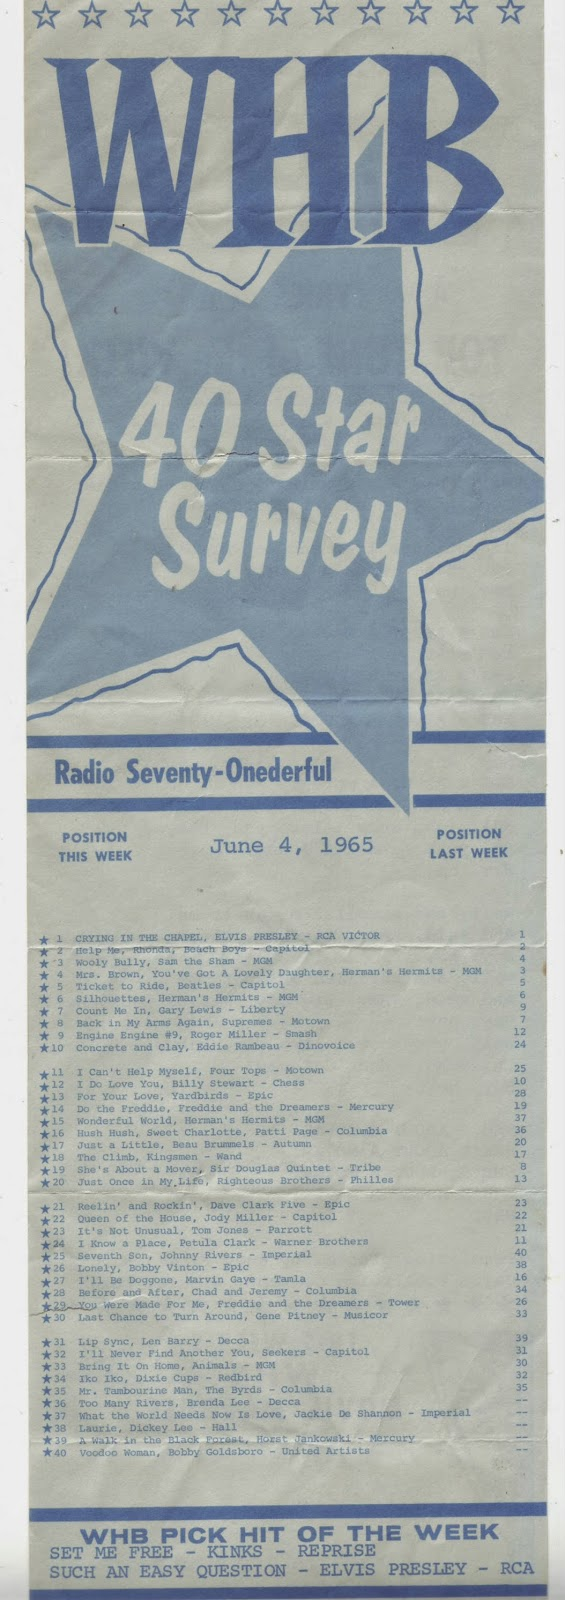 WHB And KUDL Were The Big Top 40 Stations For Kansas City Back In 60s At 710 With 10000 Watts Had A Huge Signal This Is Star Survey